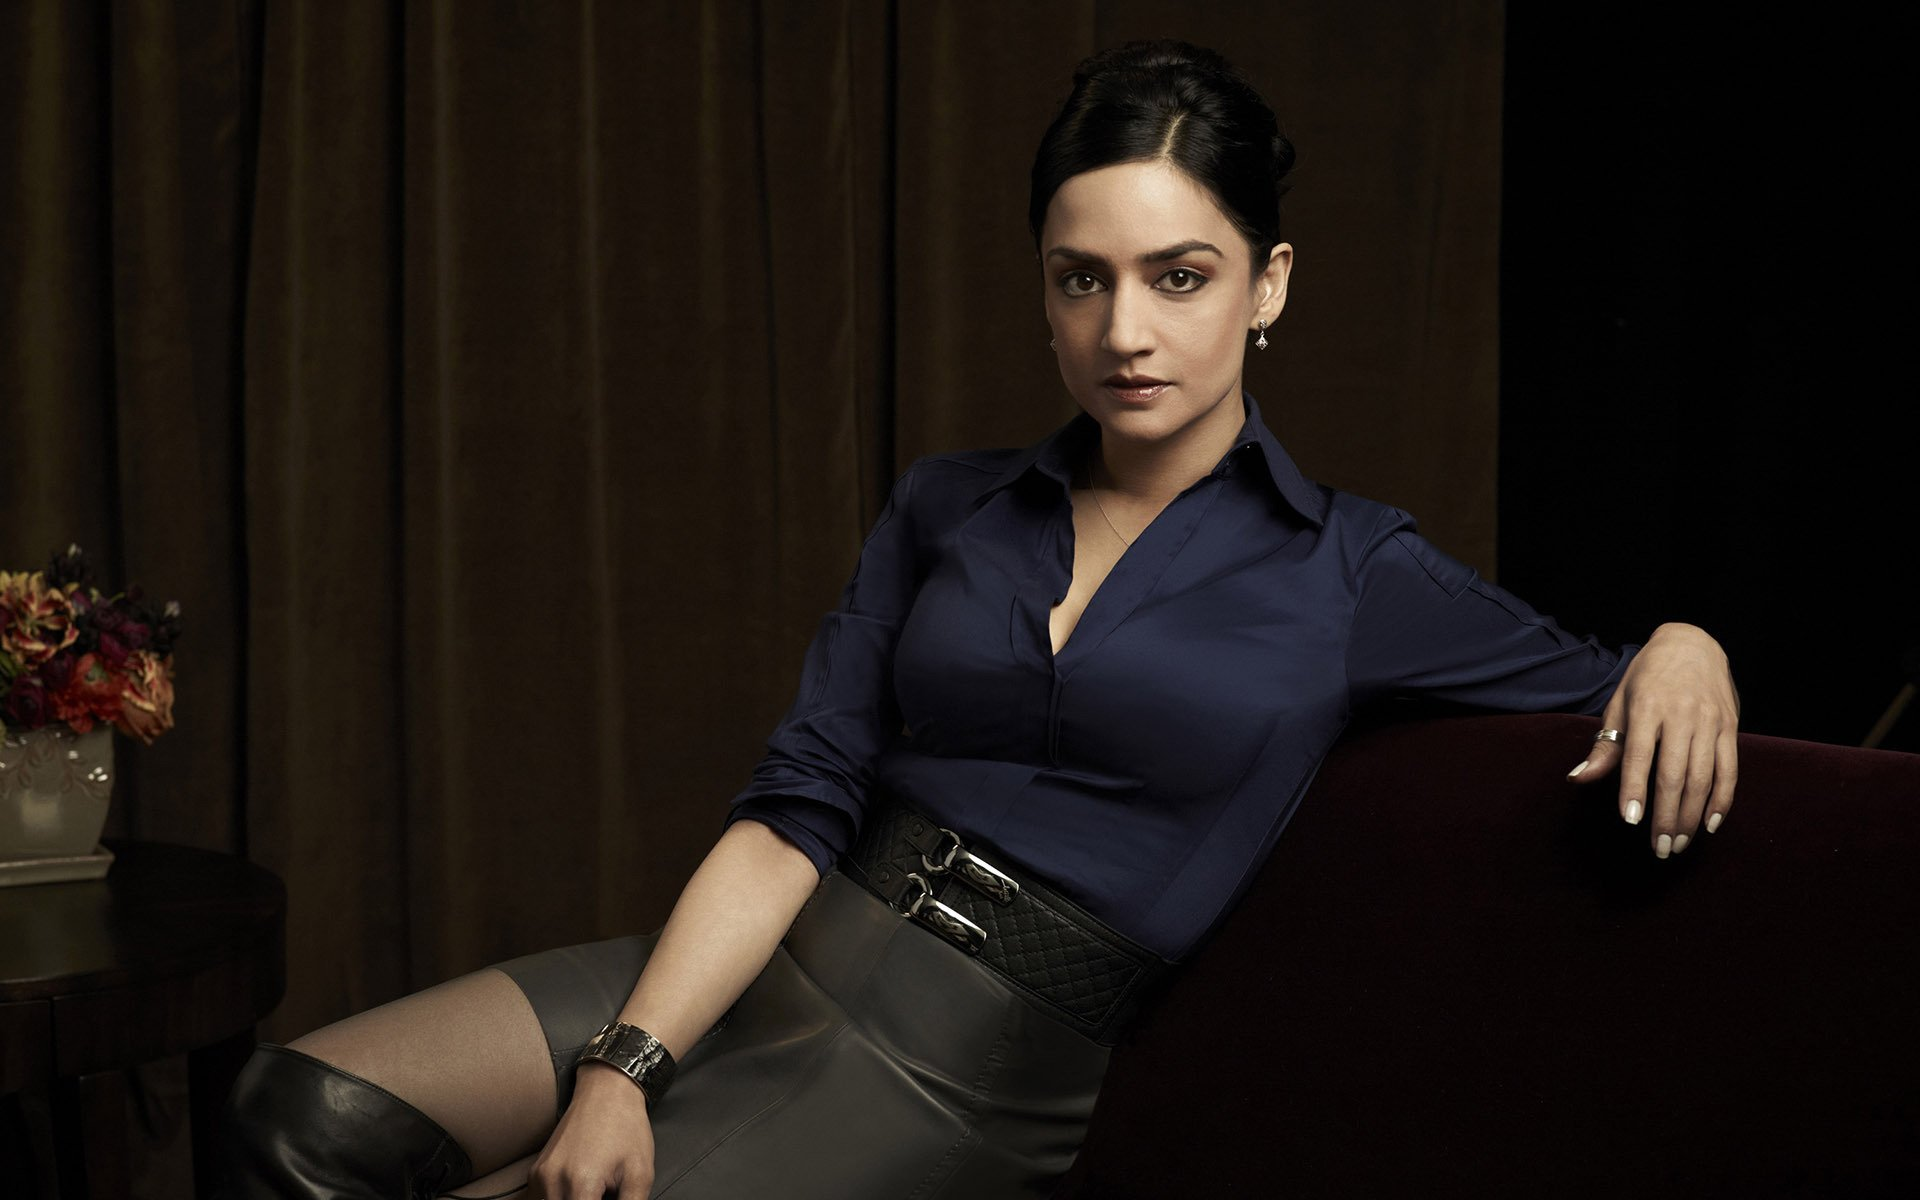 archie panjabi computer background 1129